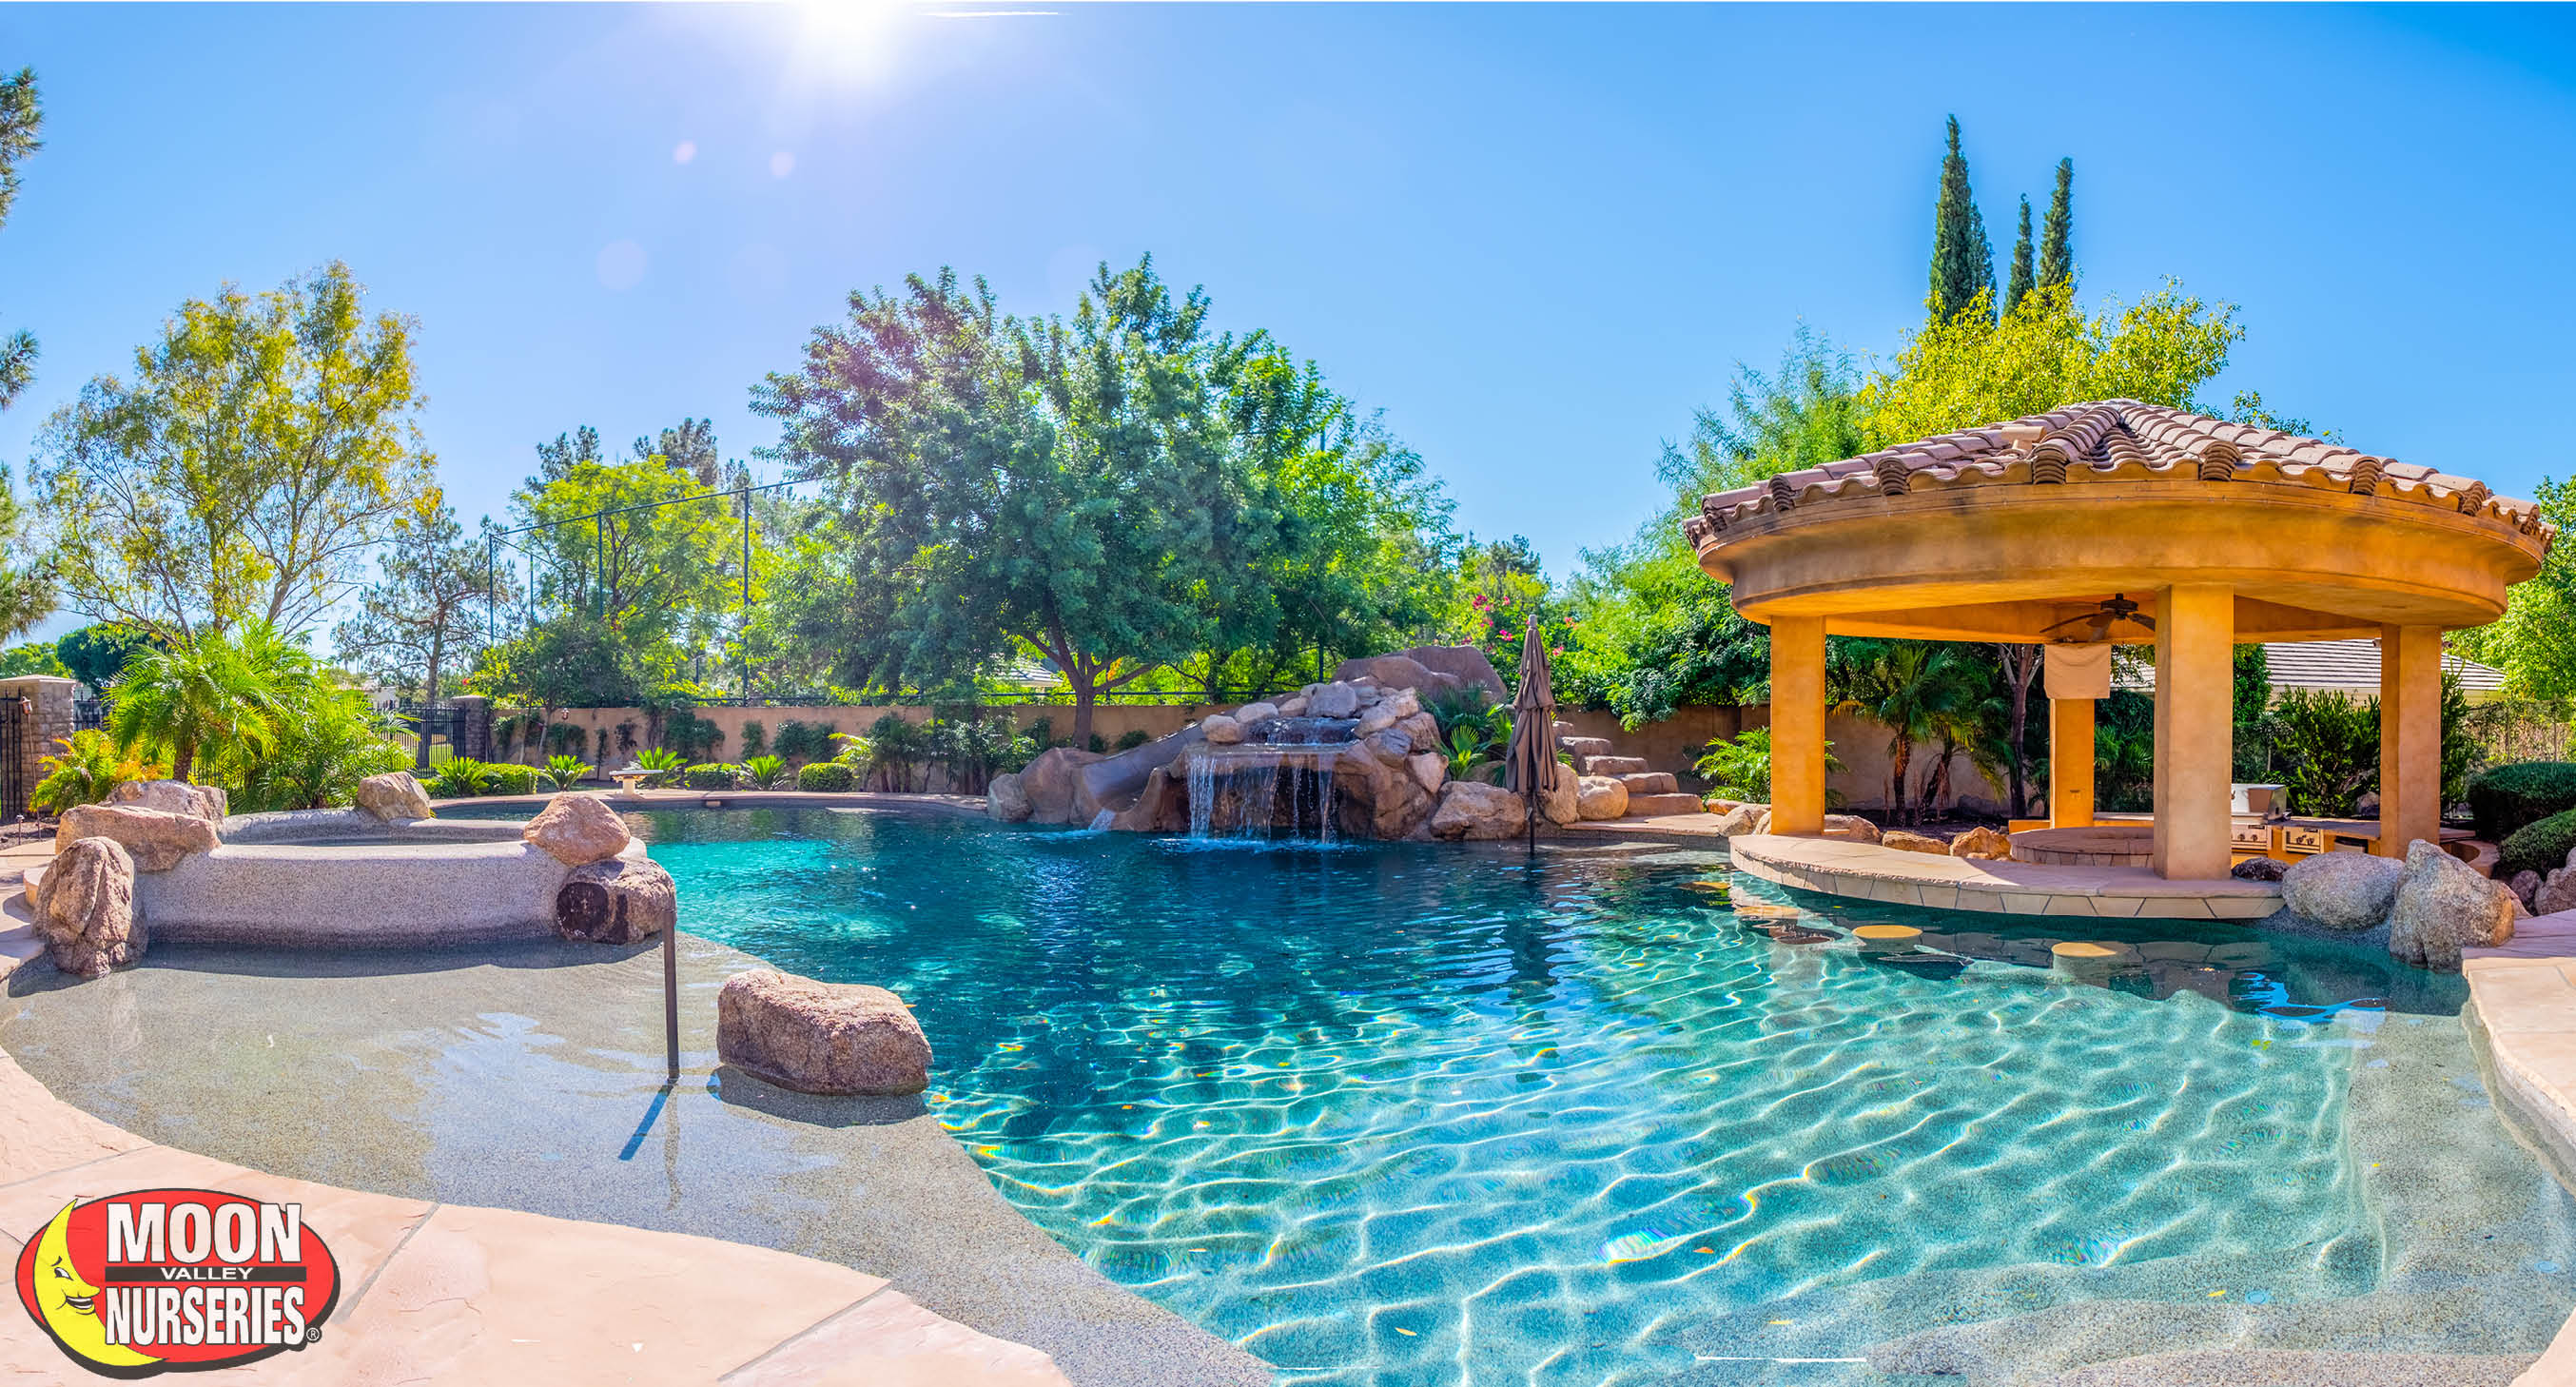 Everyone Enjoys A Nice Refreshing Dip In The Pool During Our Hot Arizona Summers And We Can Help Make That Area Even More Enjoyable By Adding Trees